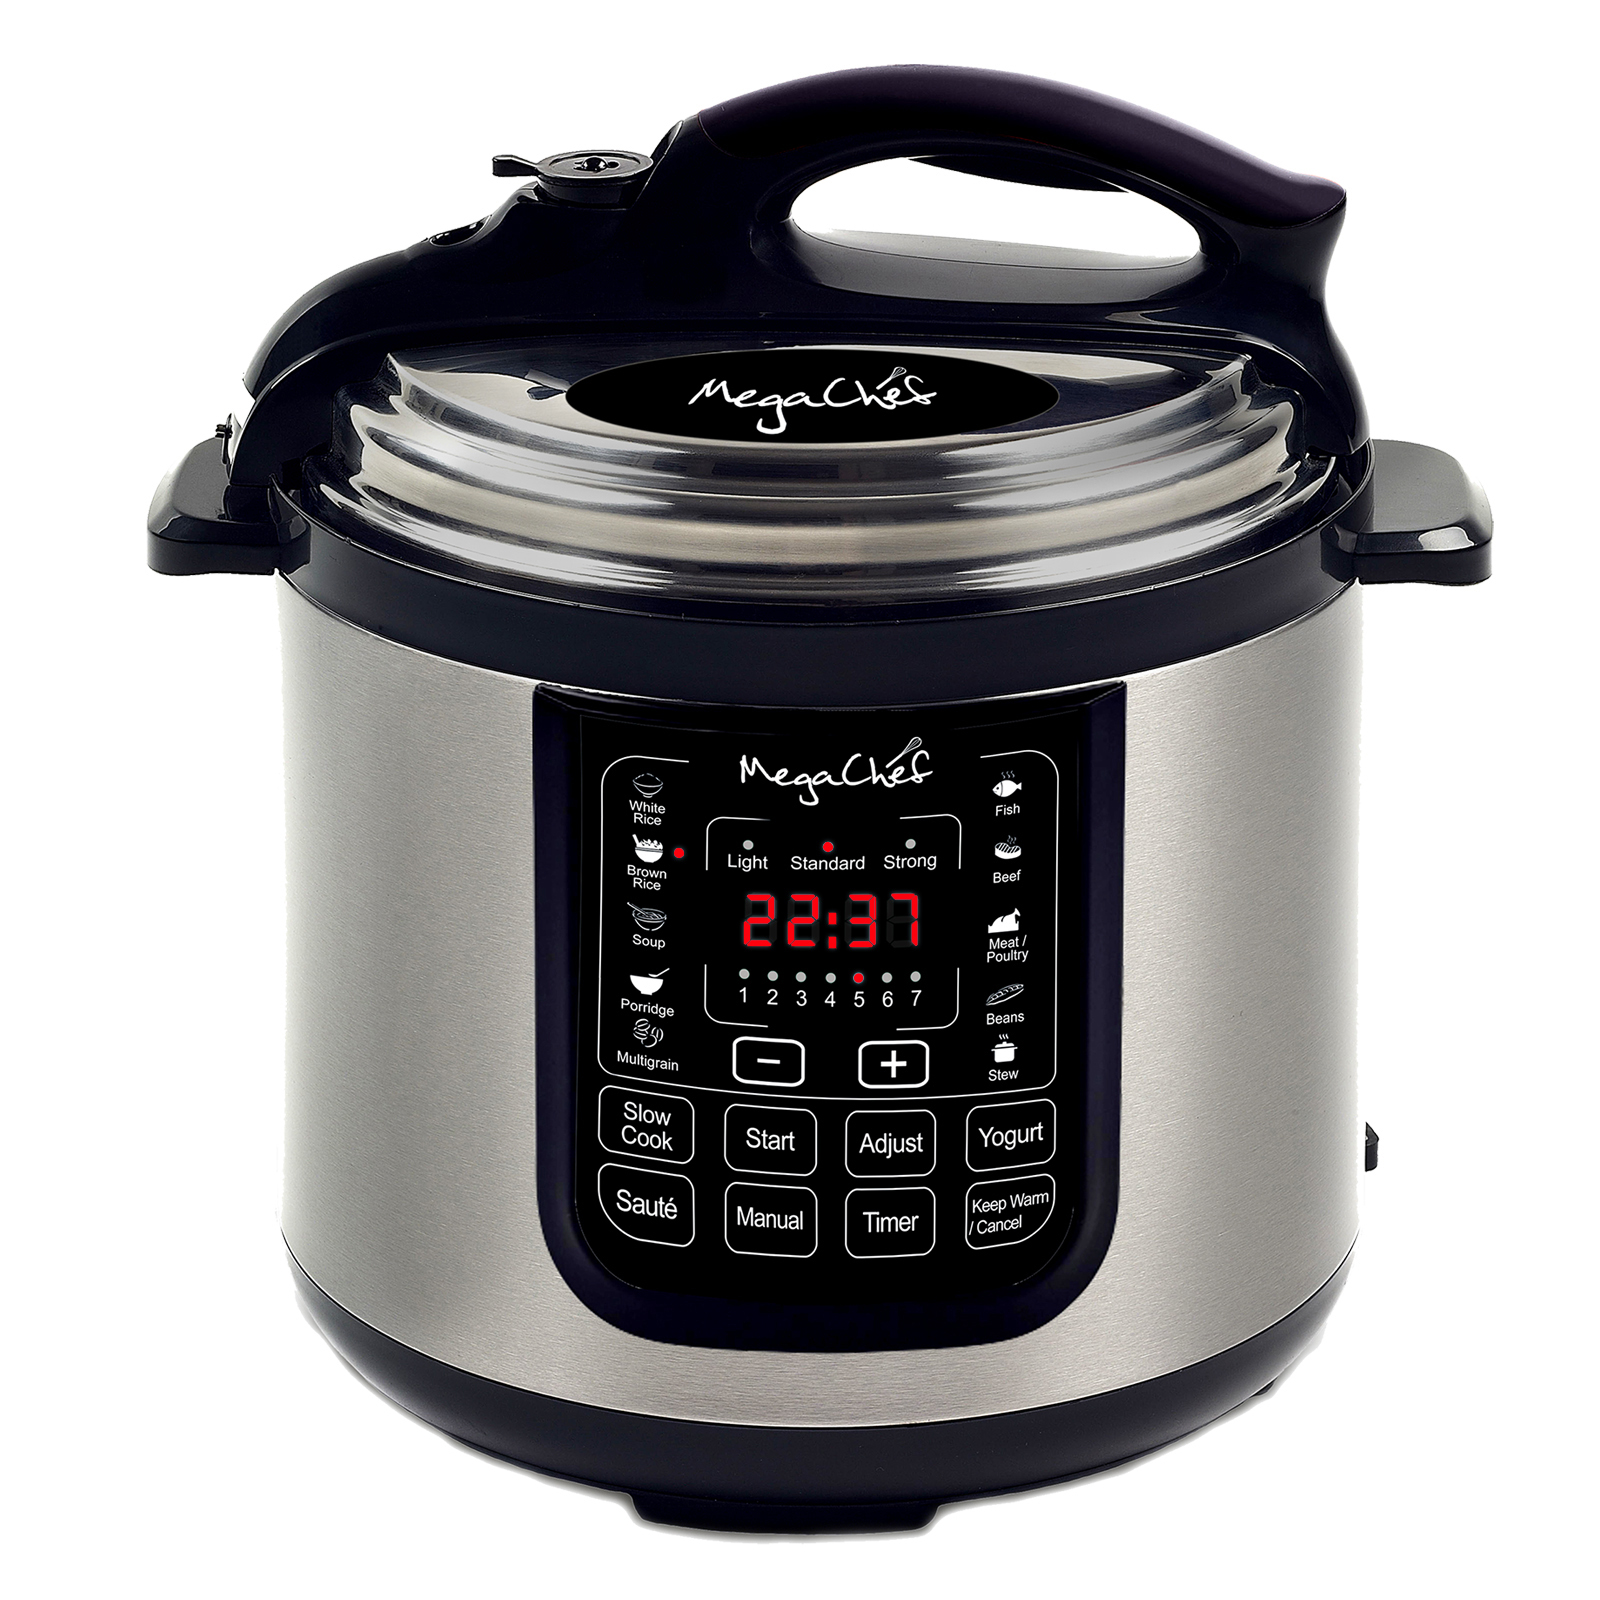 MegaChef 8 Quart Electric Pressure Cooker with 13 Pre-set Multi Function Features